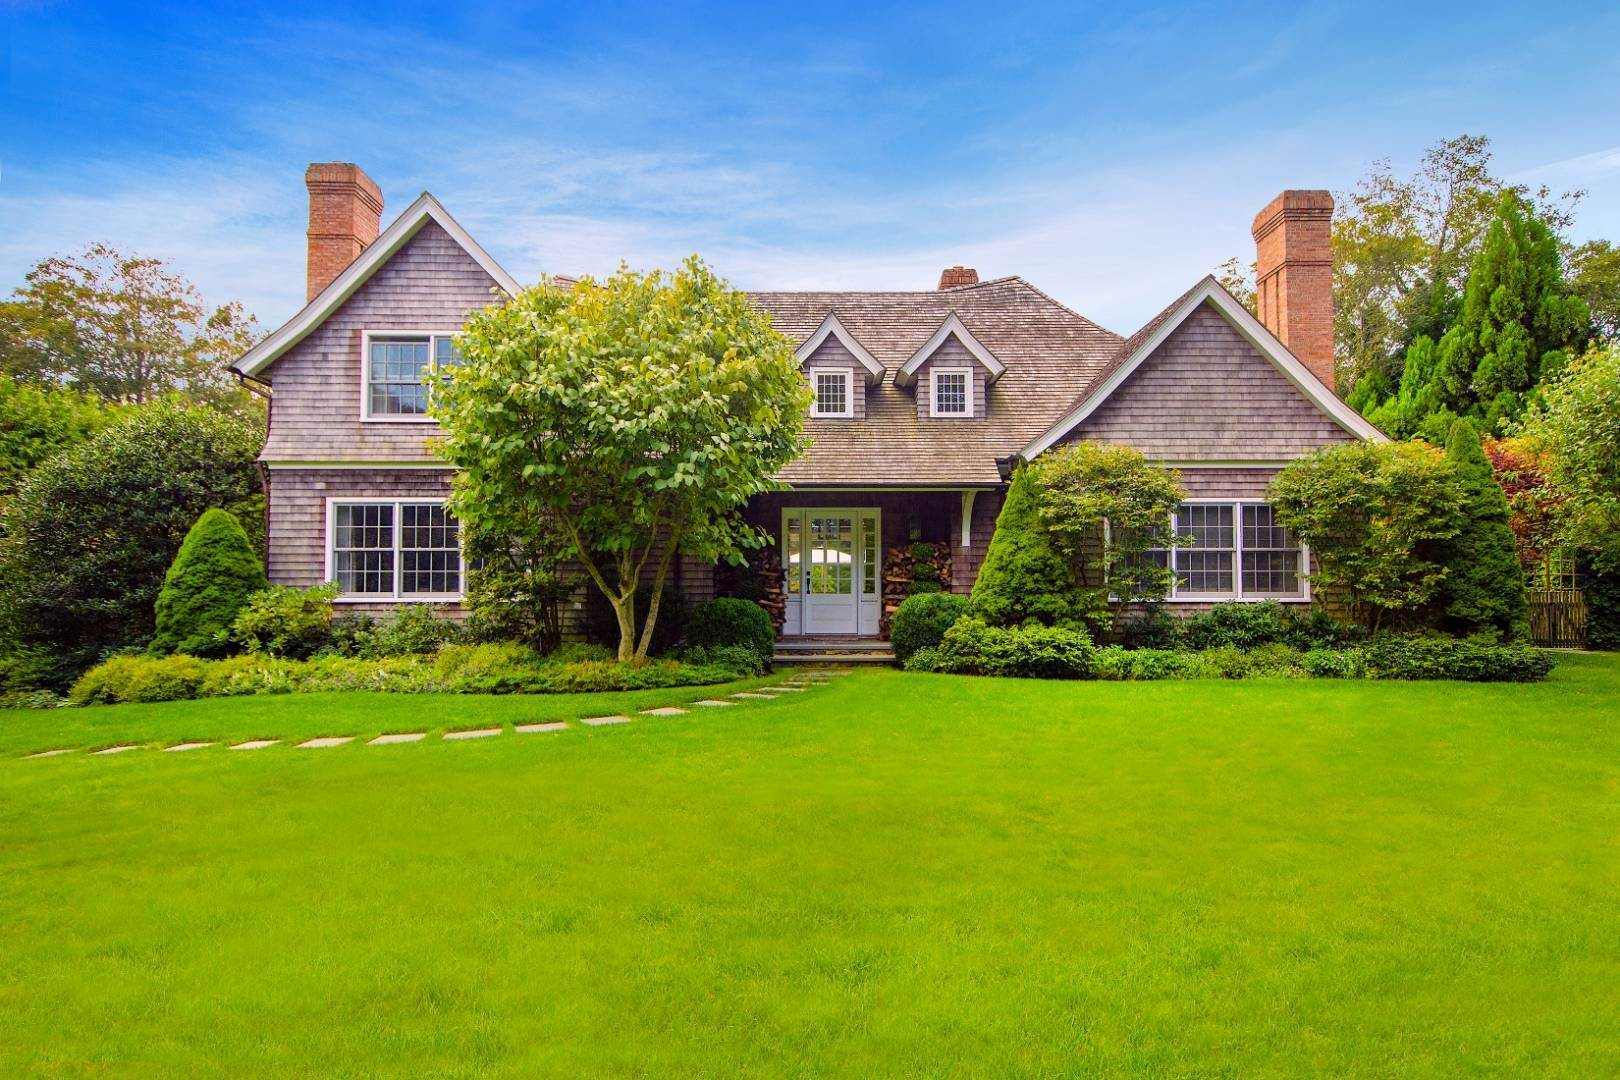 Single Family Home por un Venta en Prime Village South Location 67 Huntting Lane, East Hampton, NY 11937